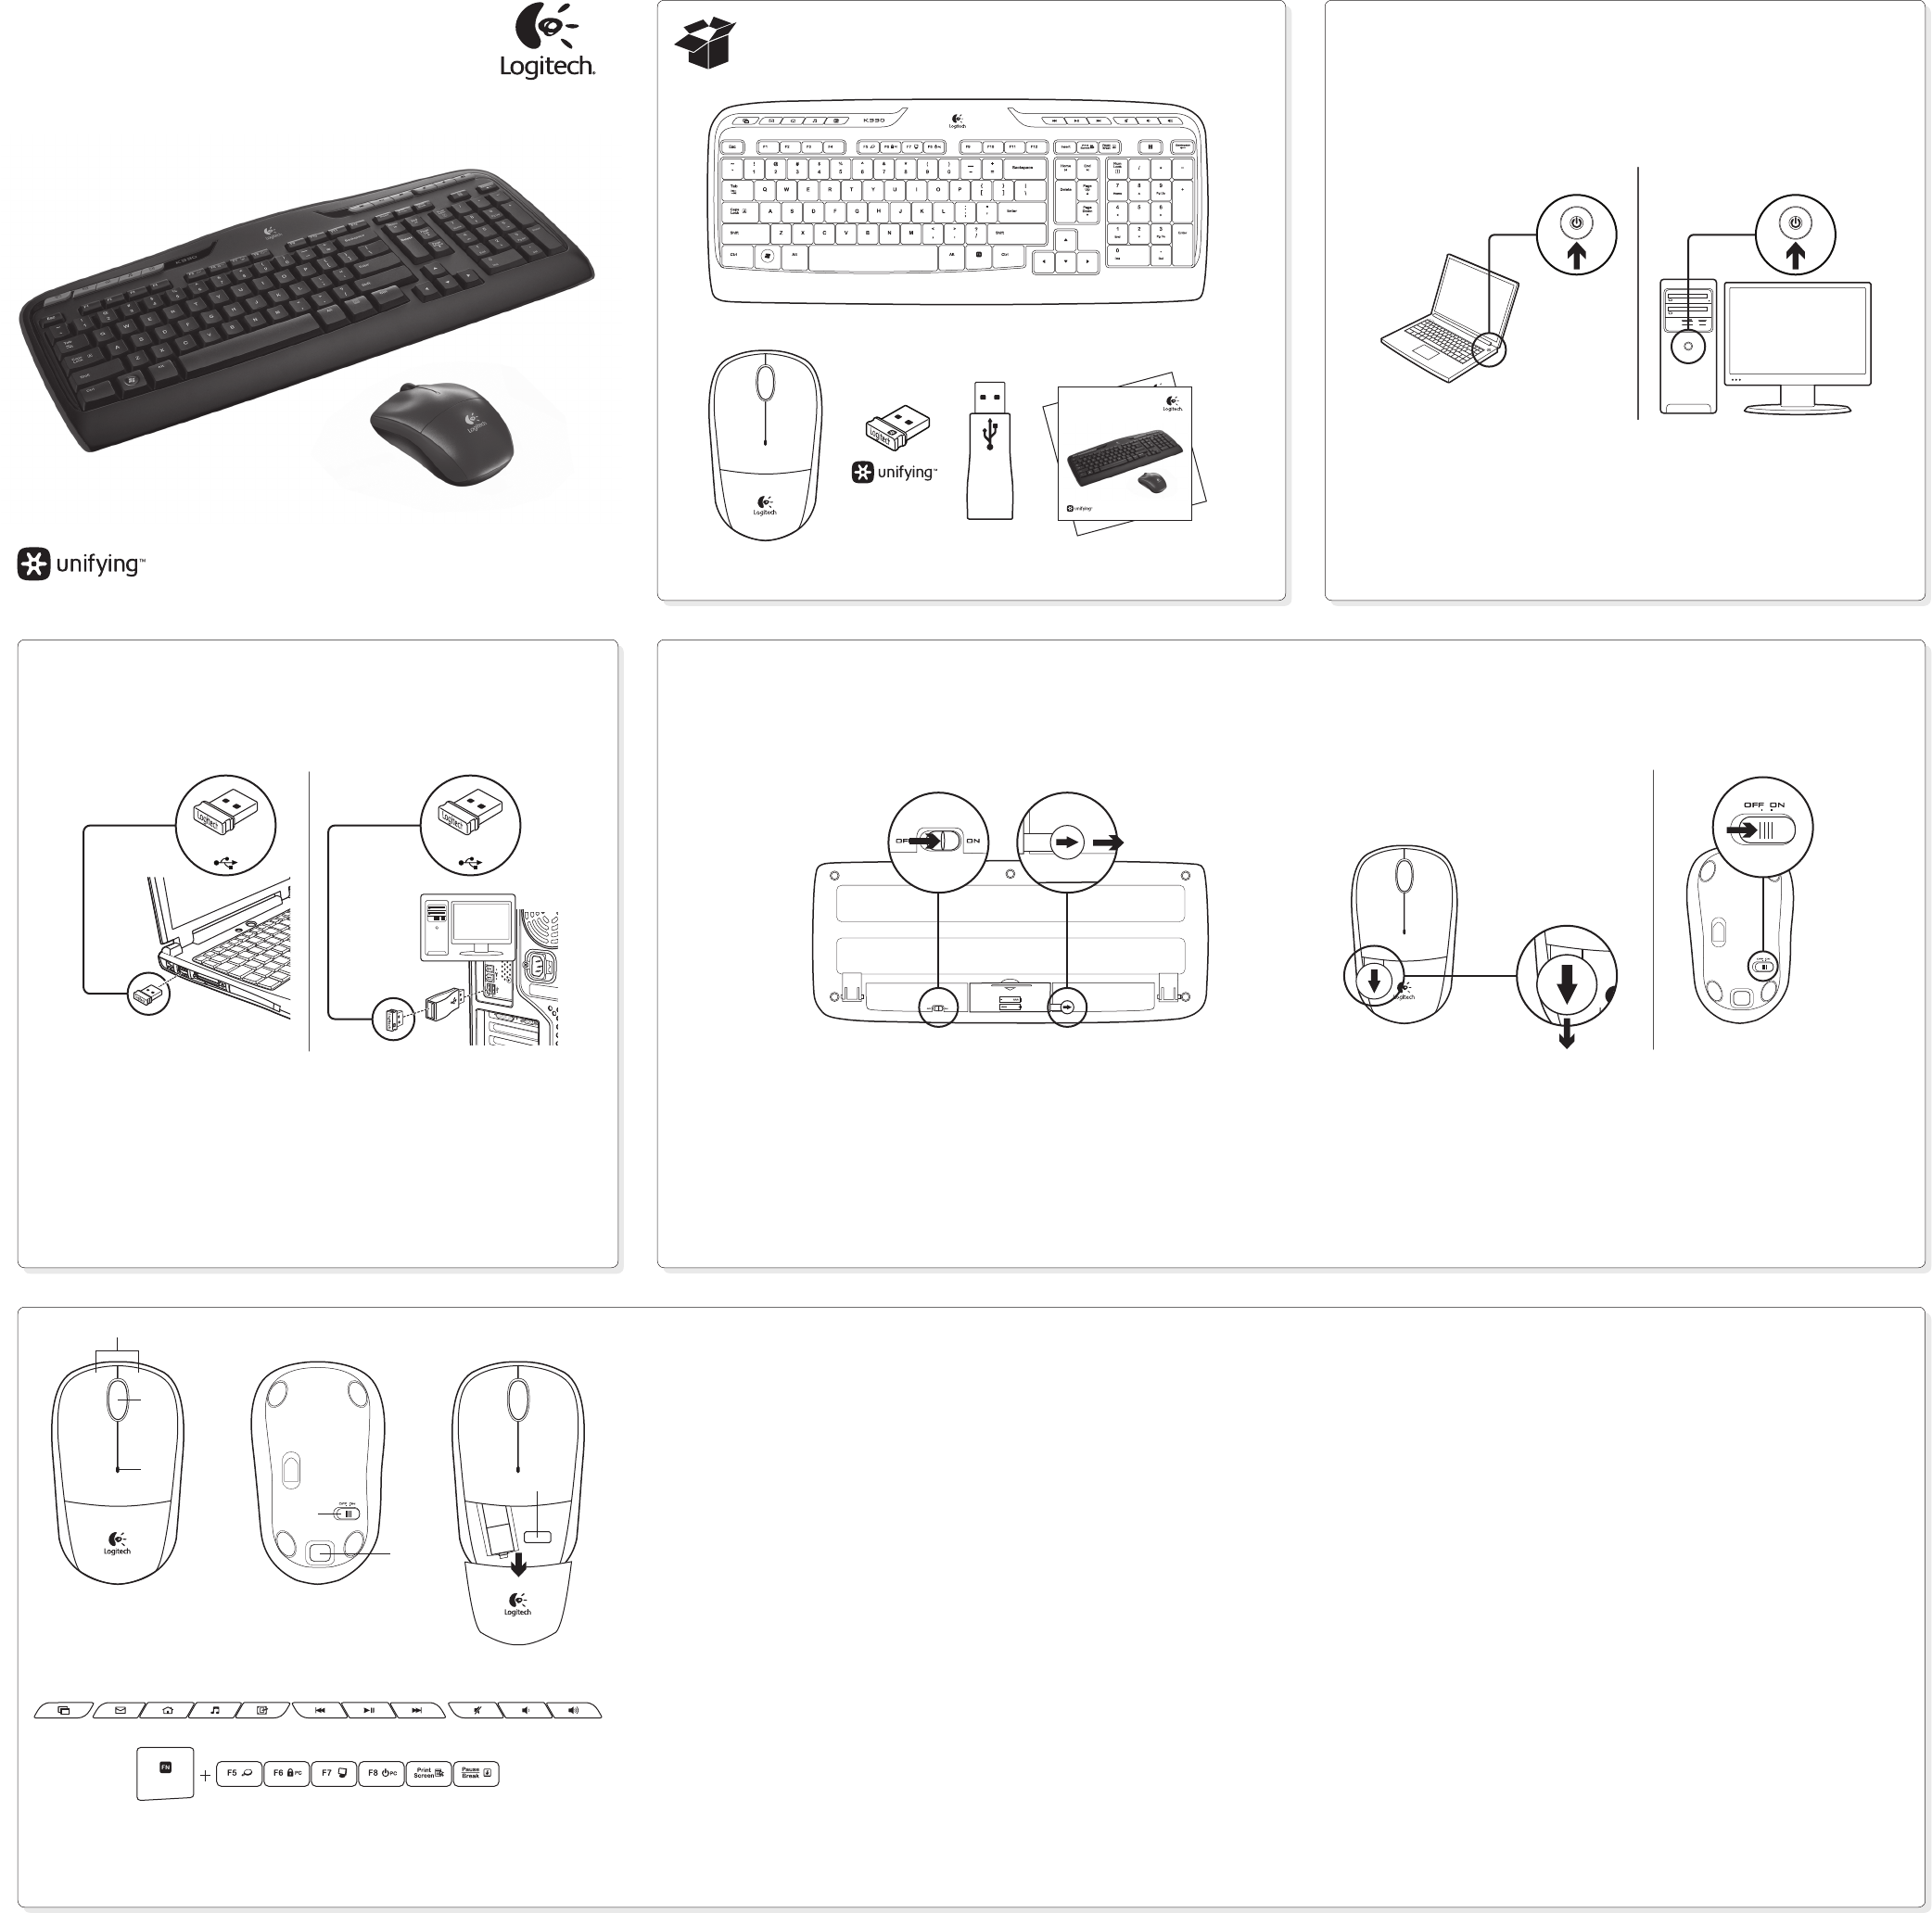 Logitech Computer Keyboard MK330 User Guide